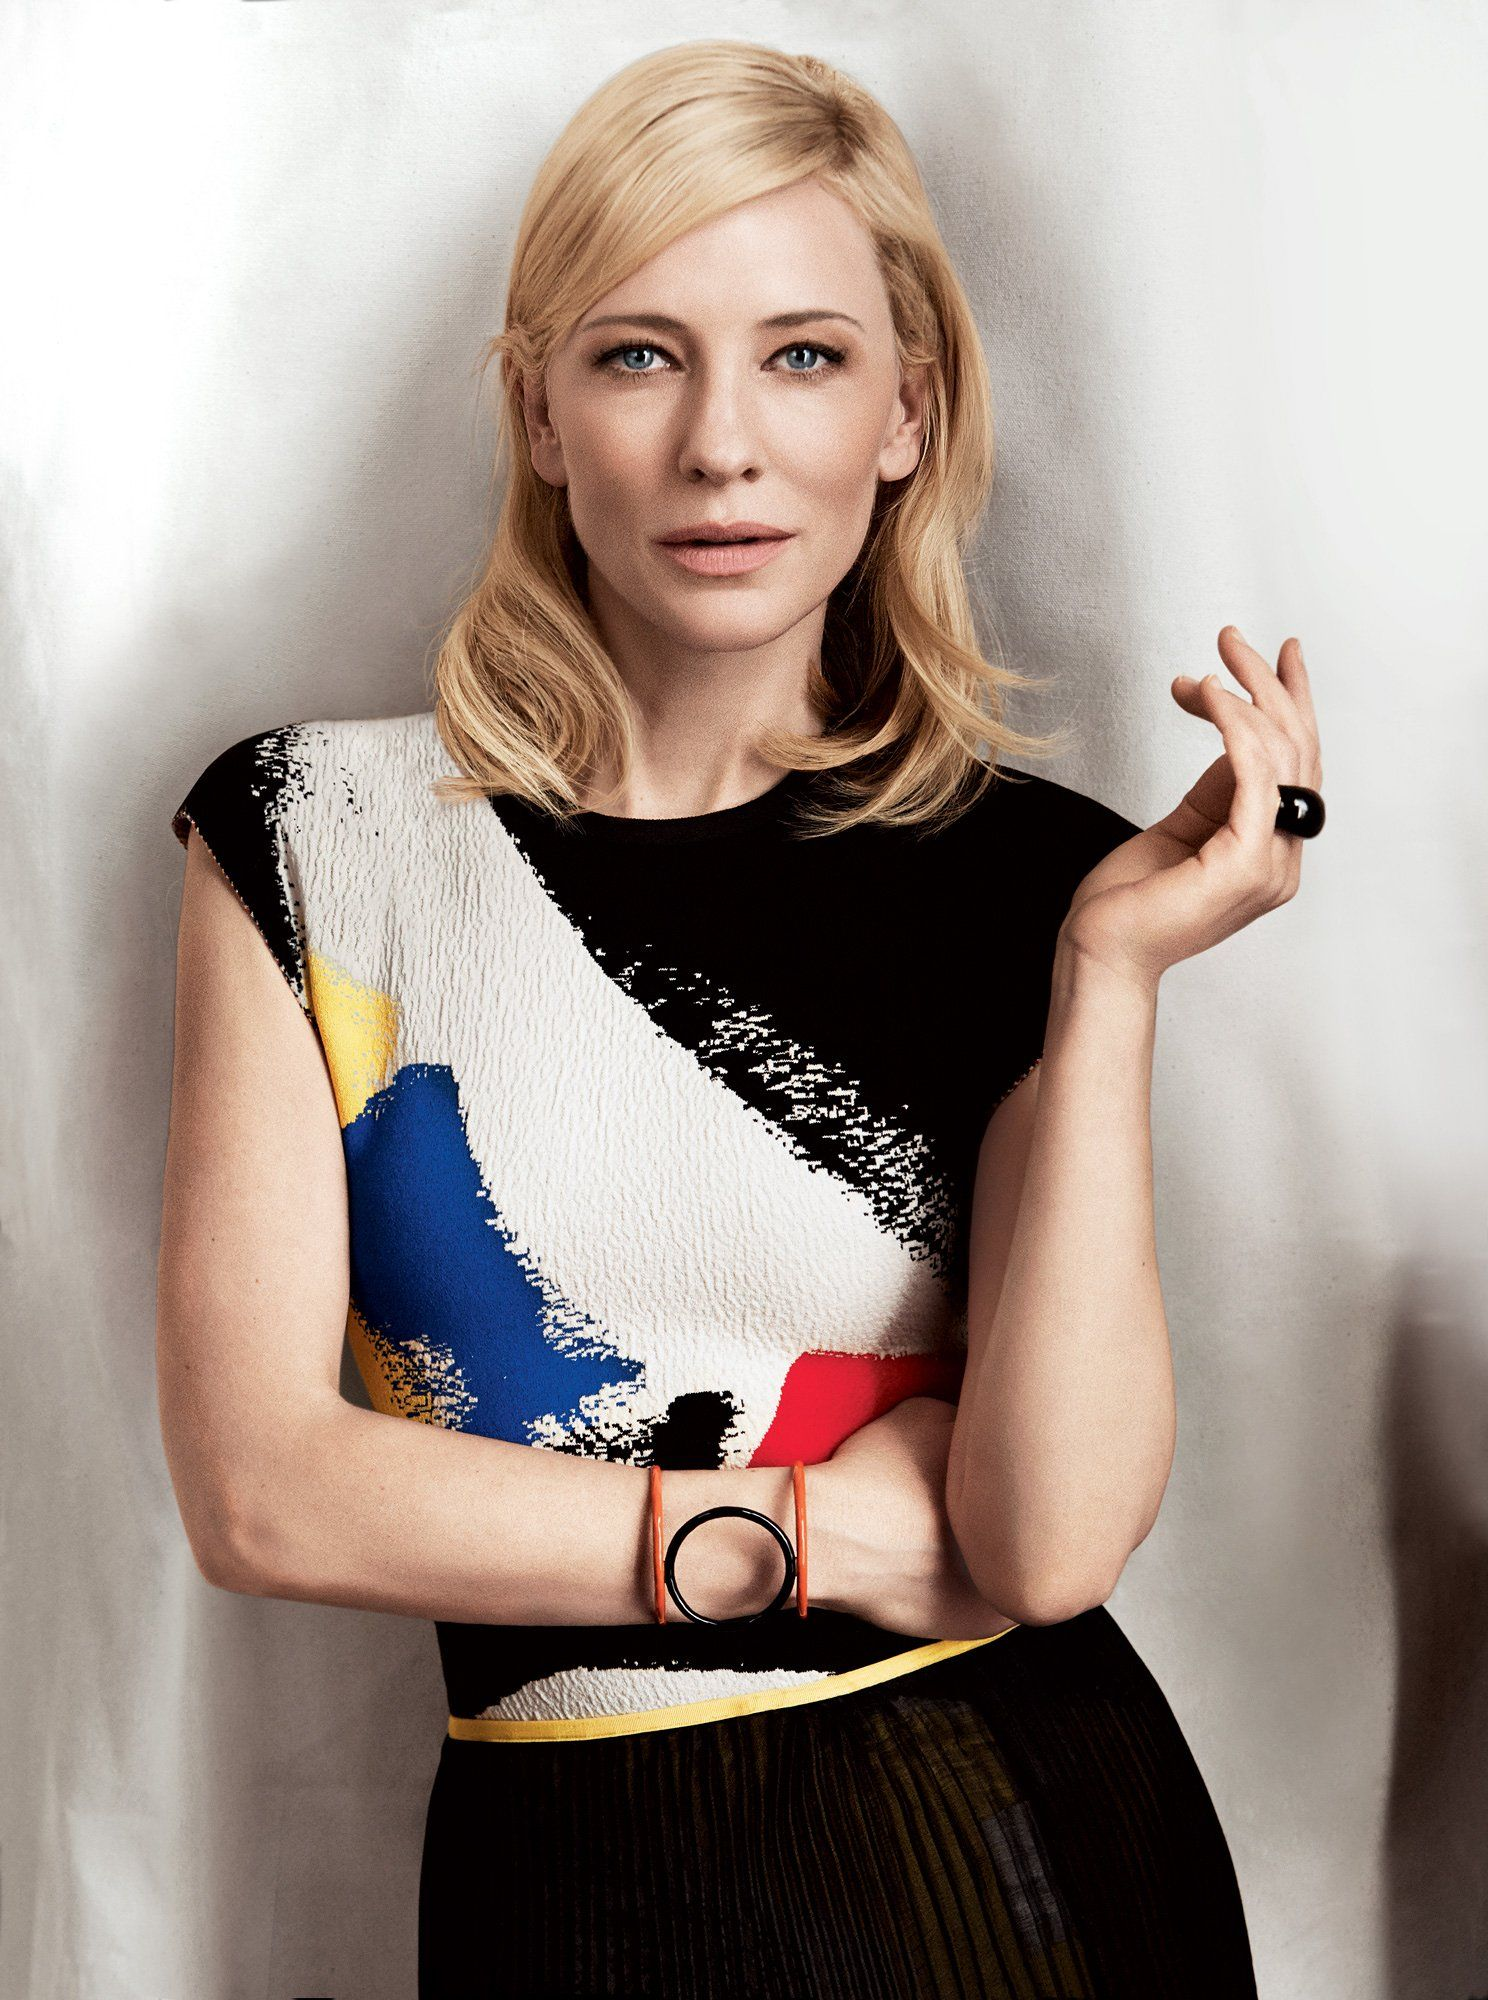 Cate Blanchett on Truth, Carol, and the Oscar Race Cate